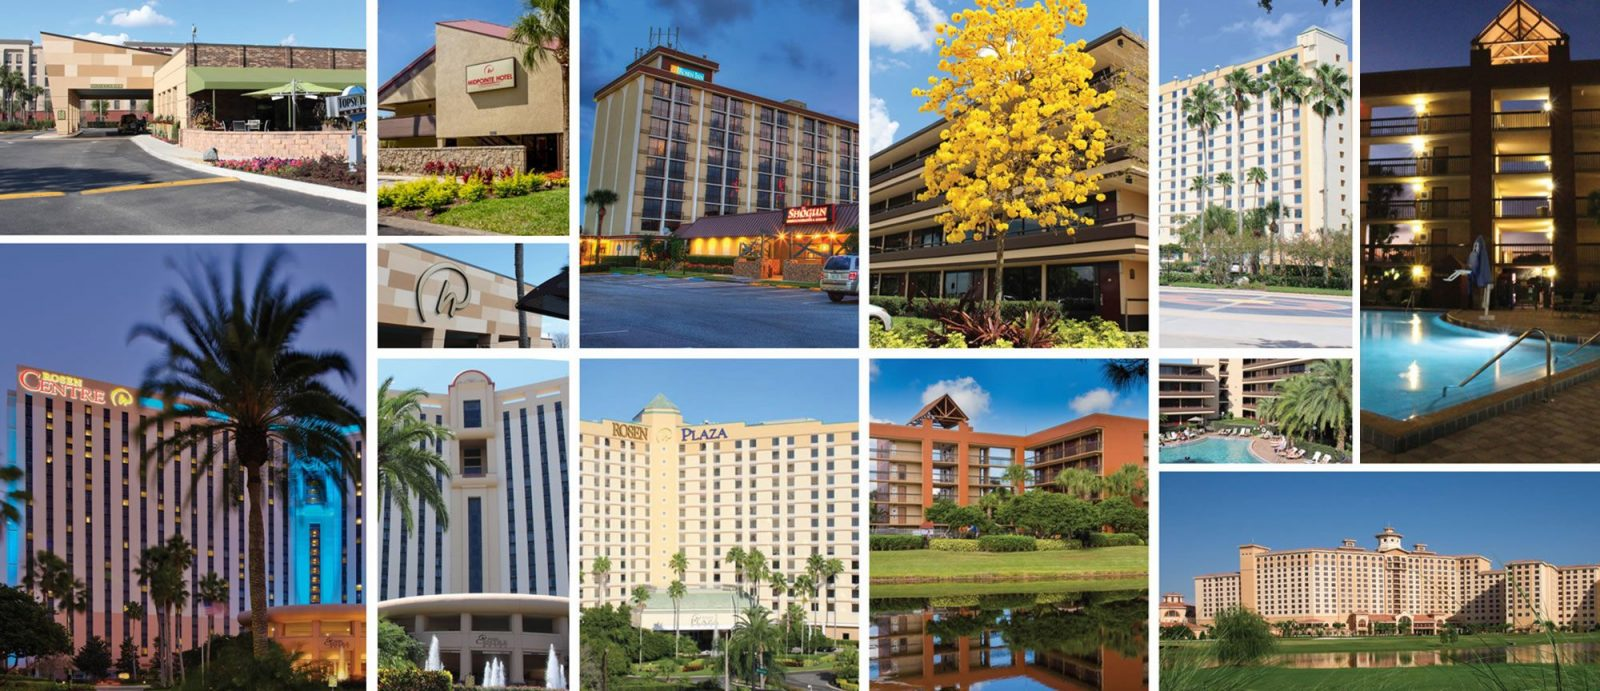 Orlando Hotels | Orlando Convention, Vacation and Conference Hotels